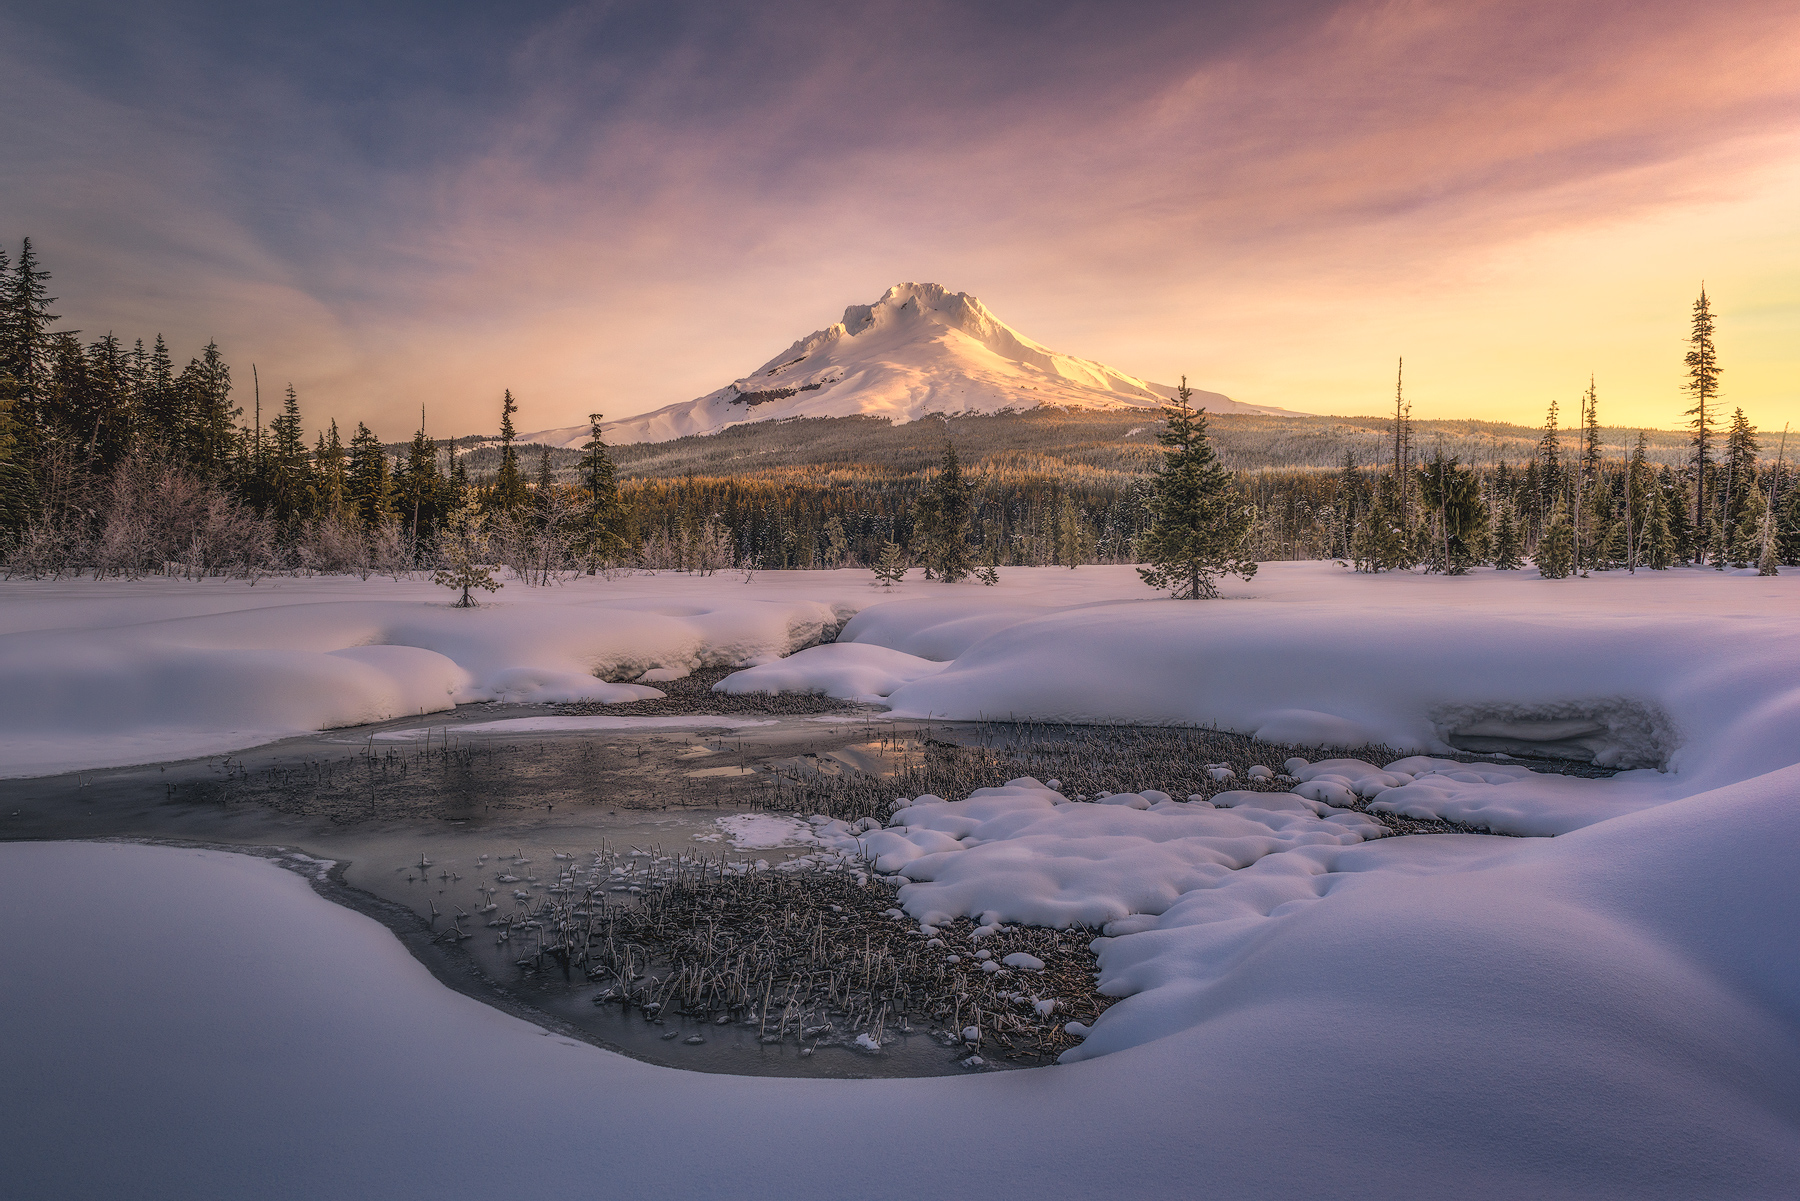 mount hood, oregon, photo